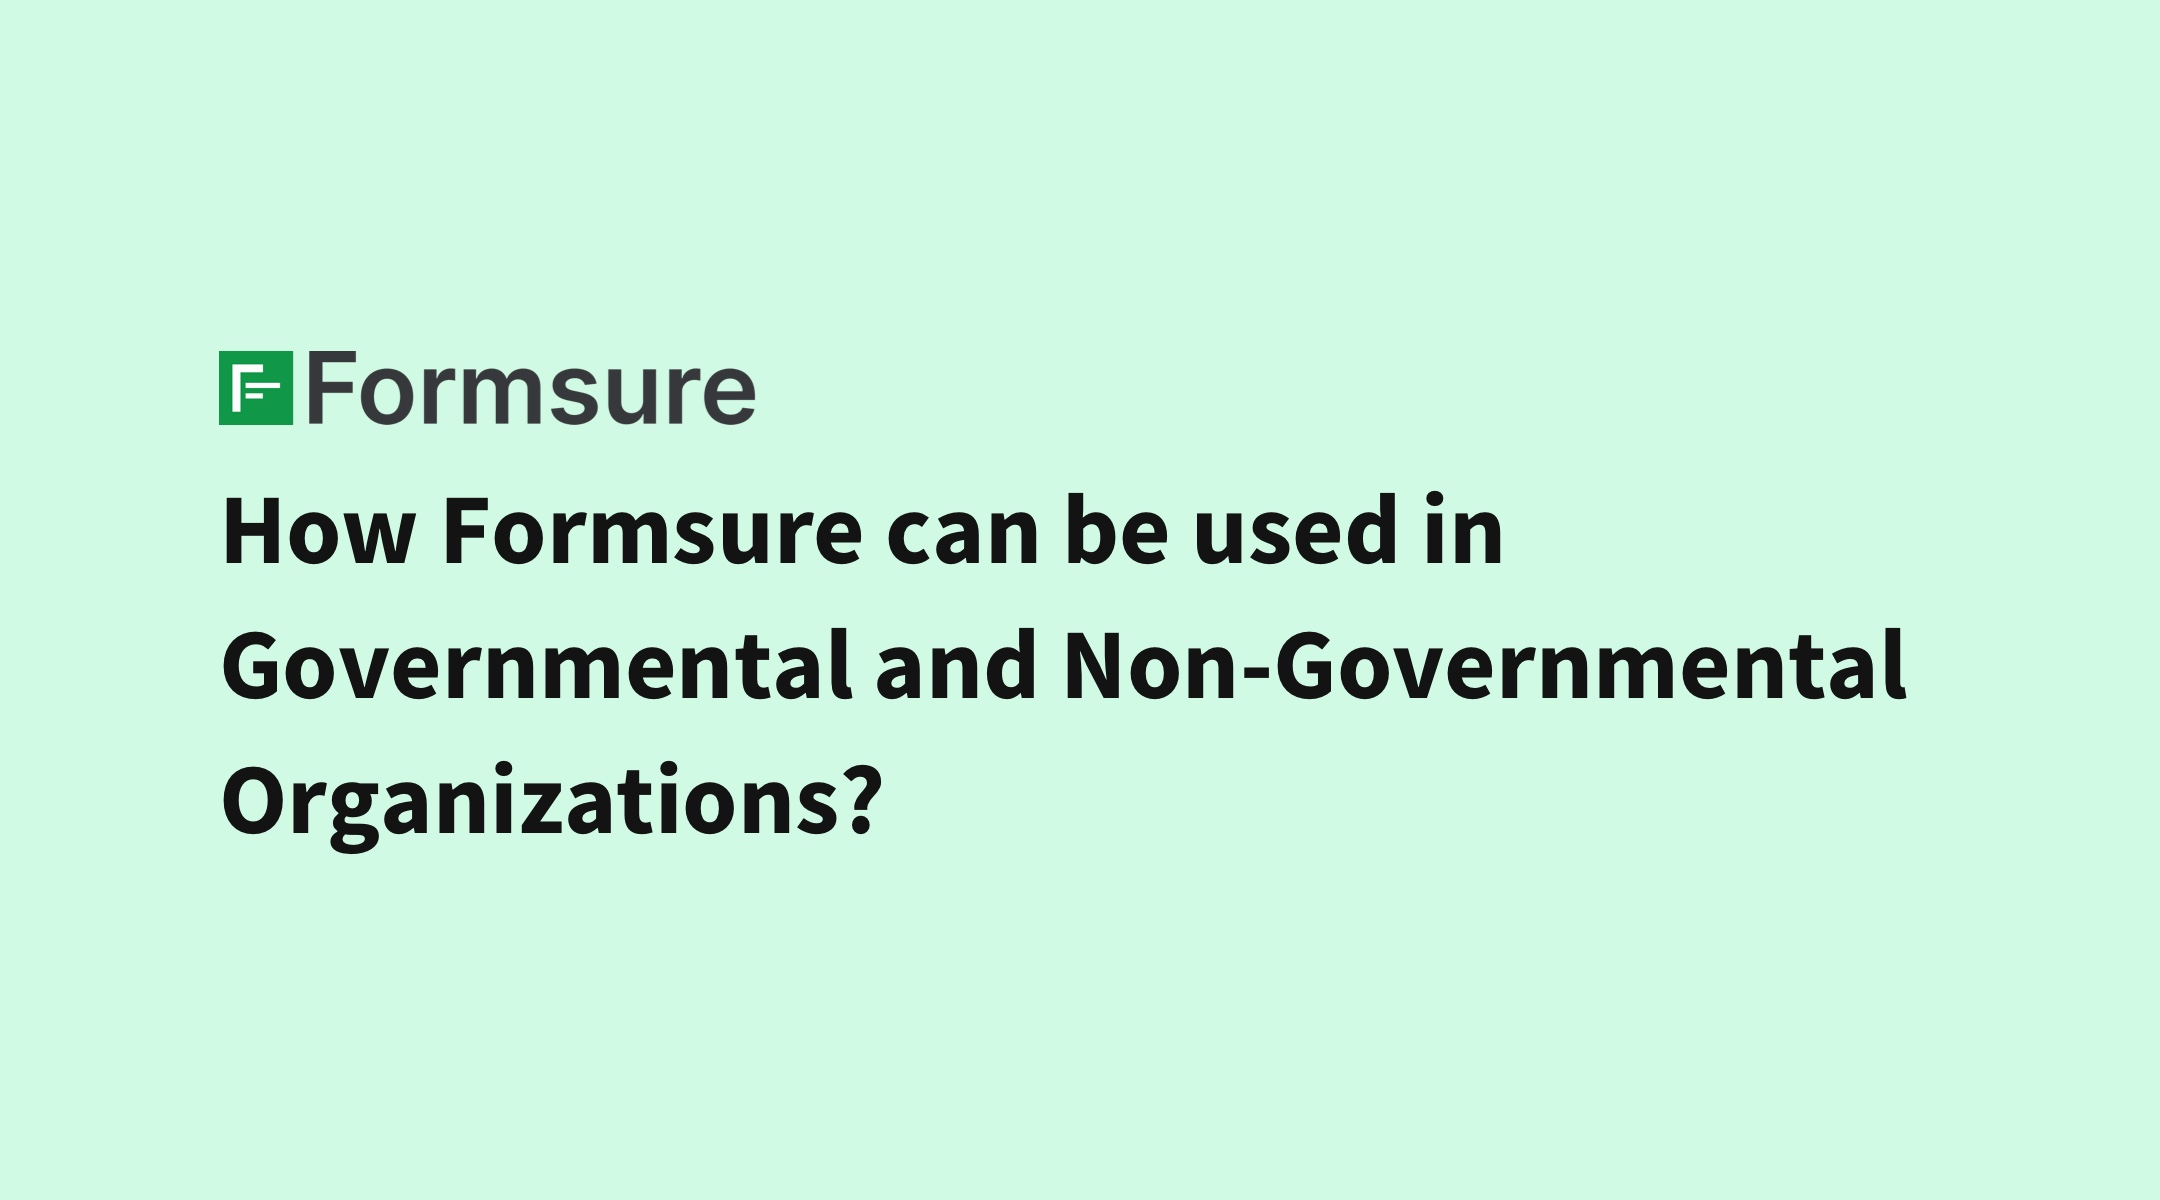 How Formsure can be used in Governmental and Non-Governmental Organizations? - Formsure